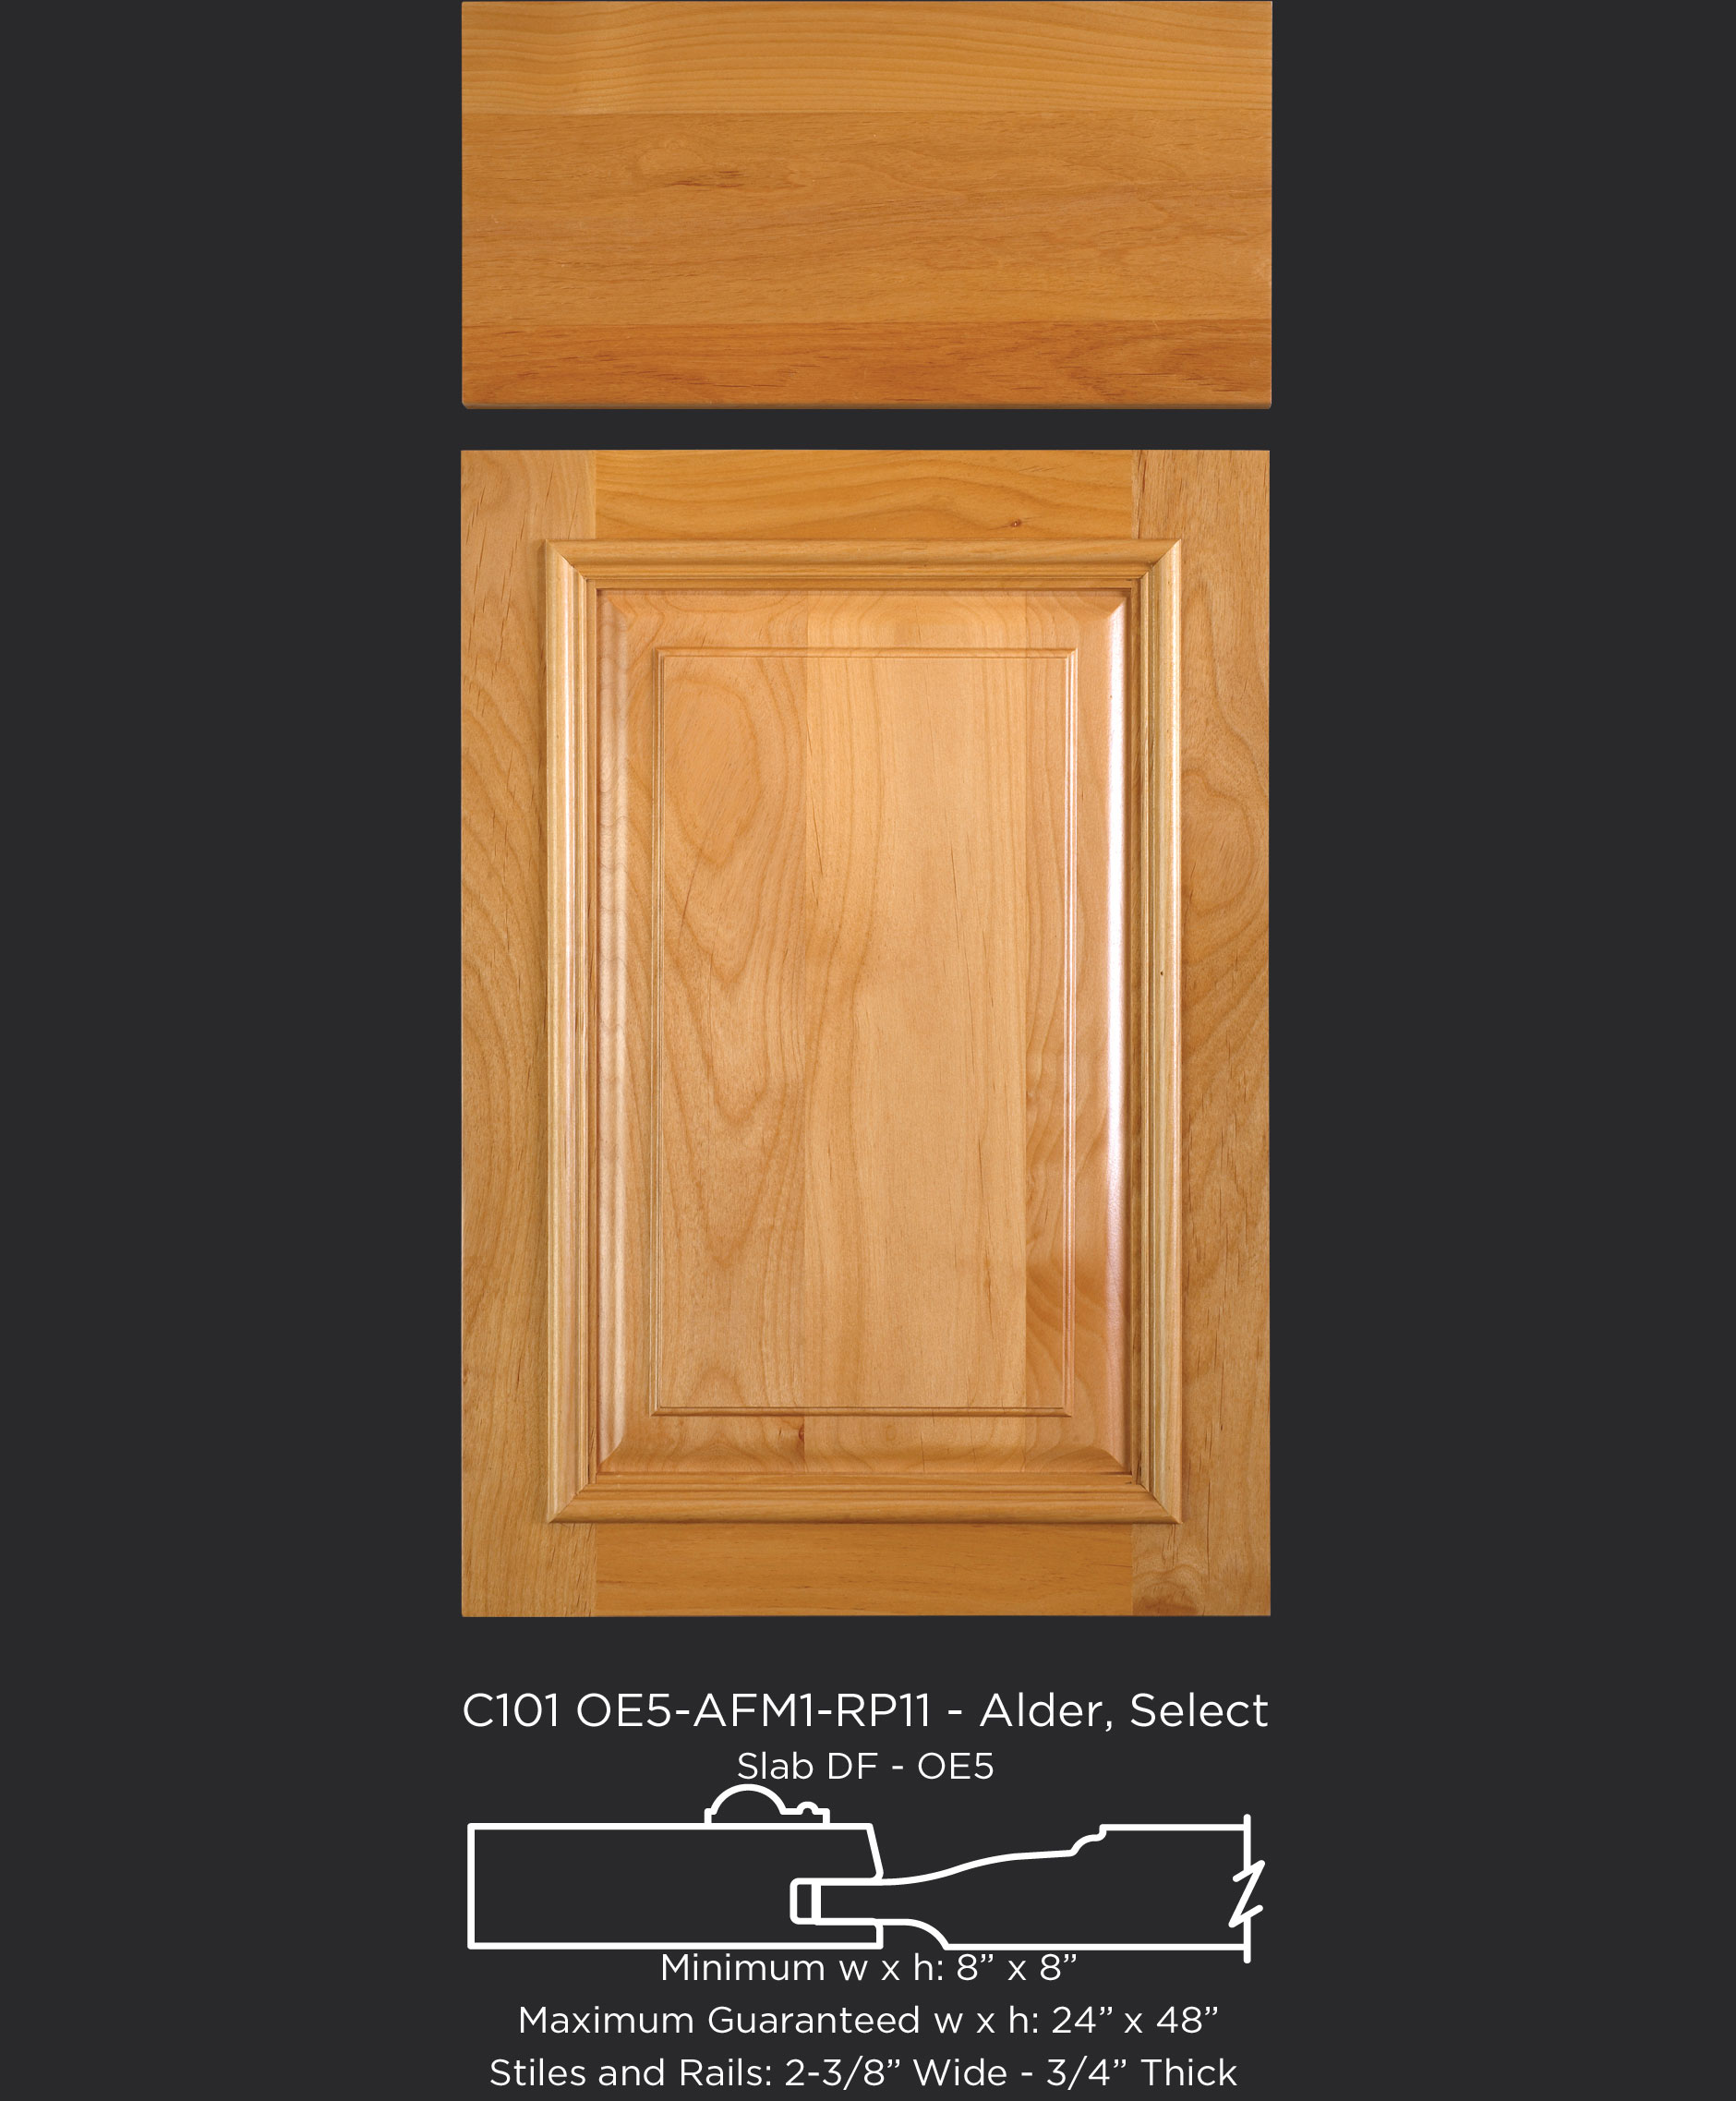 Cope and Stick Cabinet Door C101 OE5-IE2-AFM1-RP11 in Alder, Select - Slab drawer front with OE5